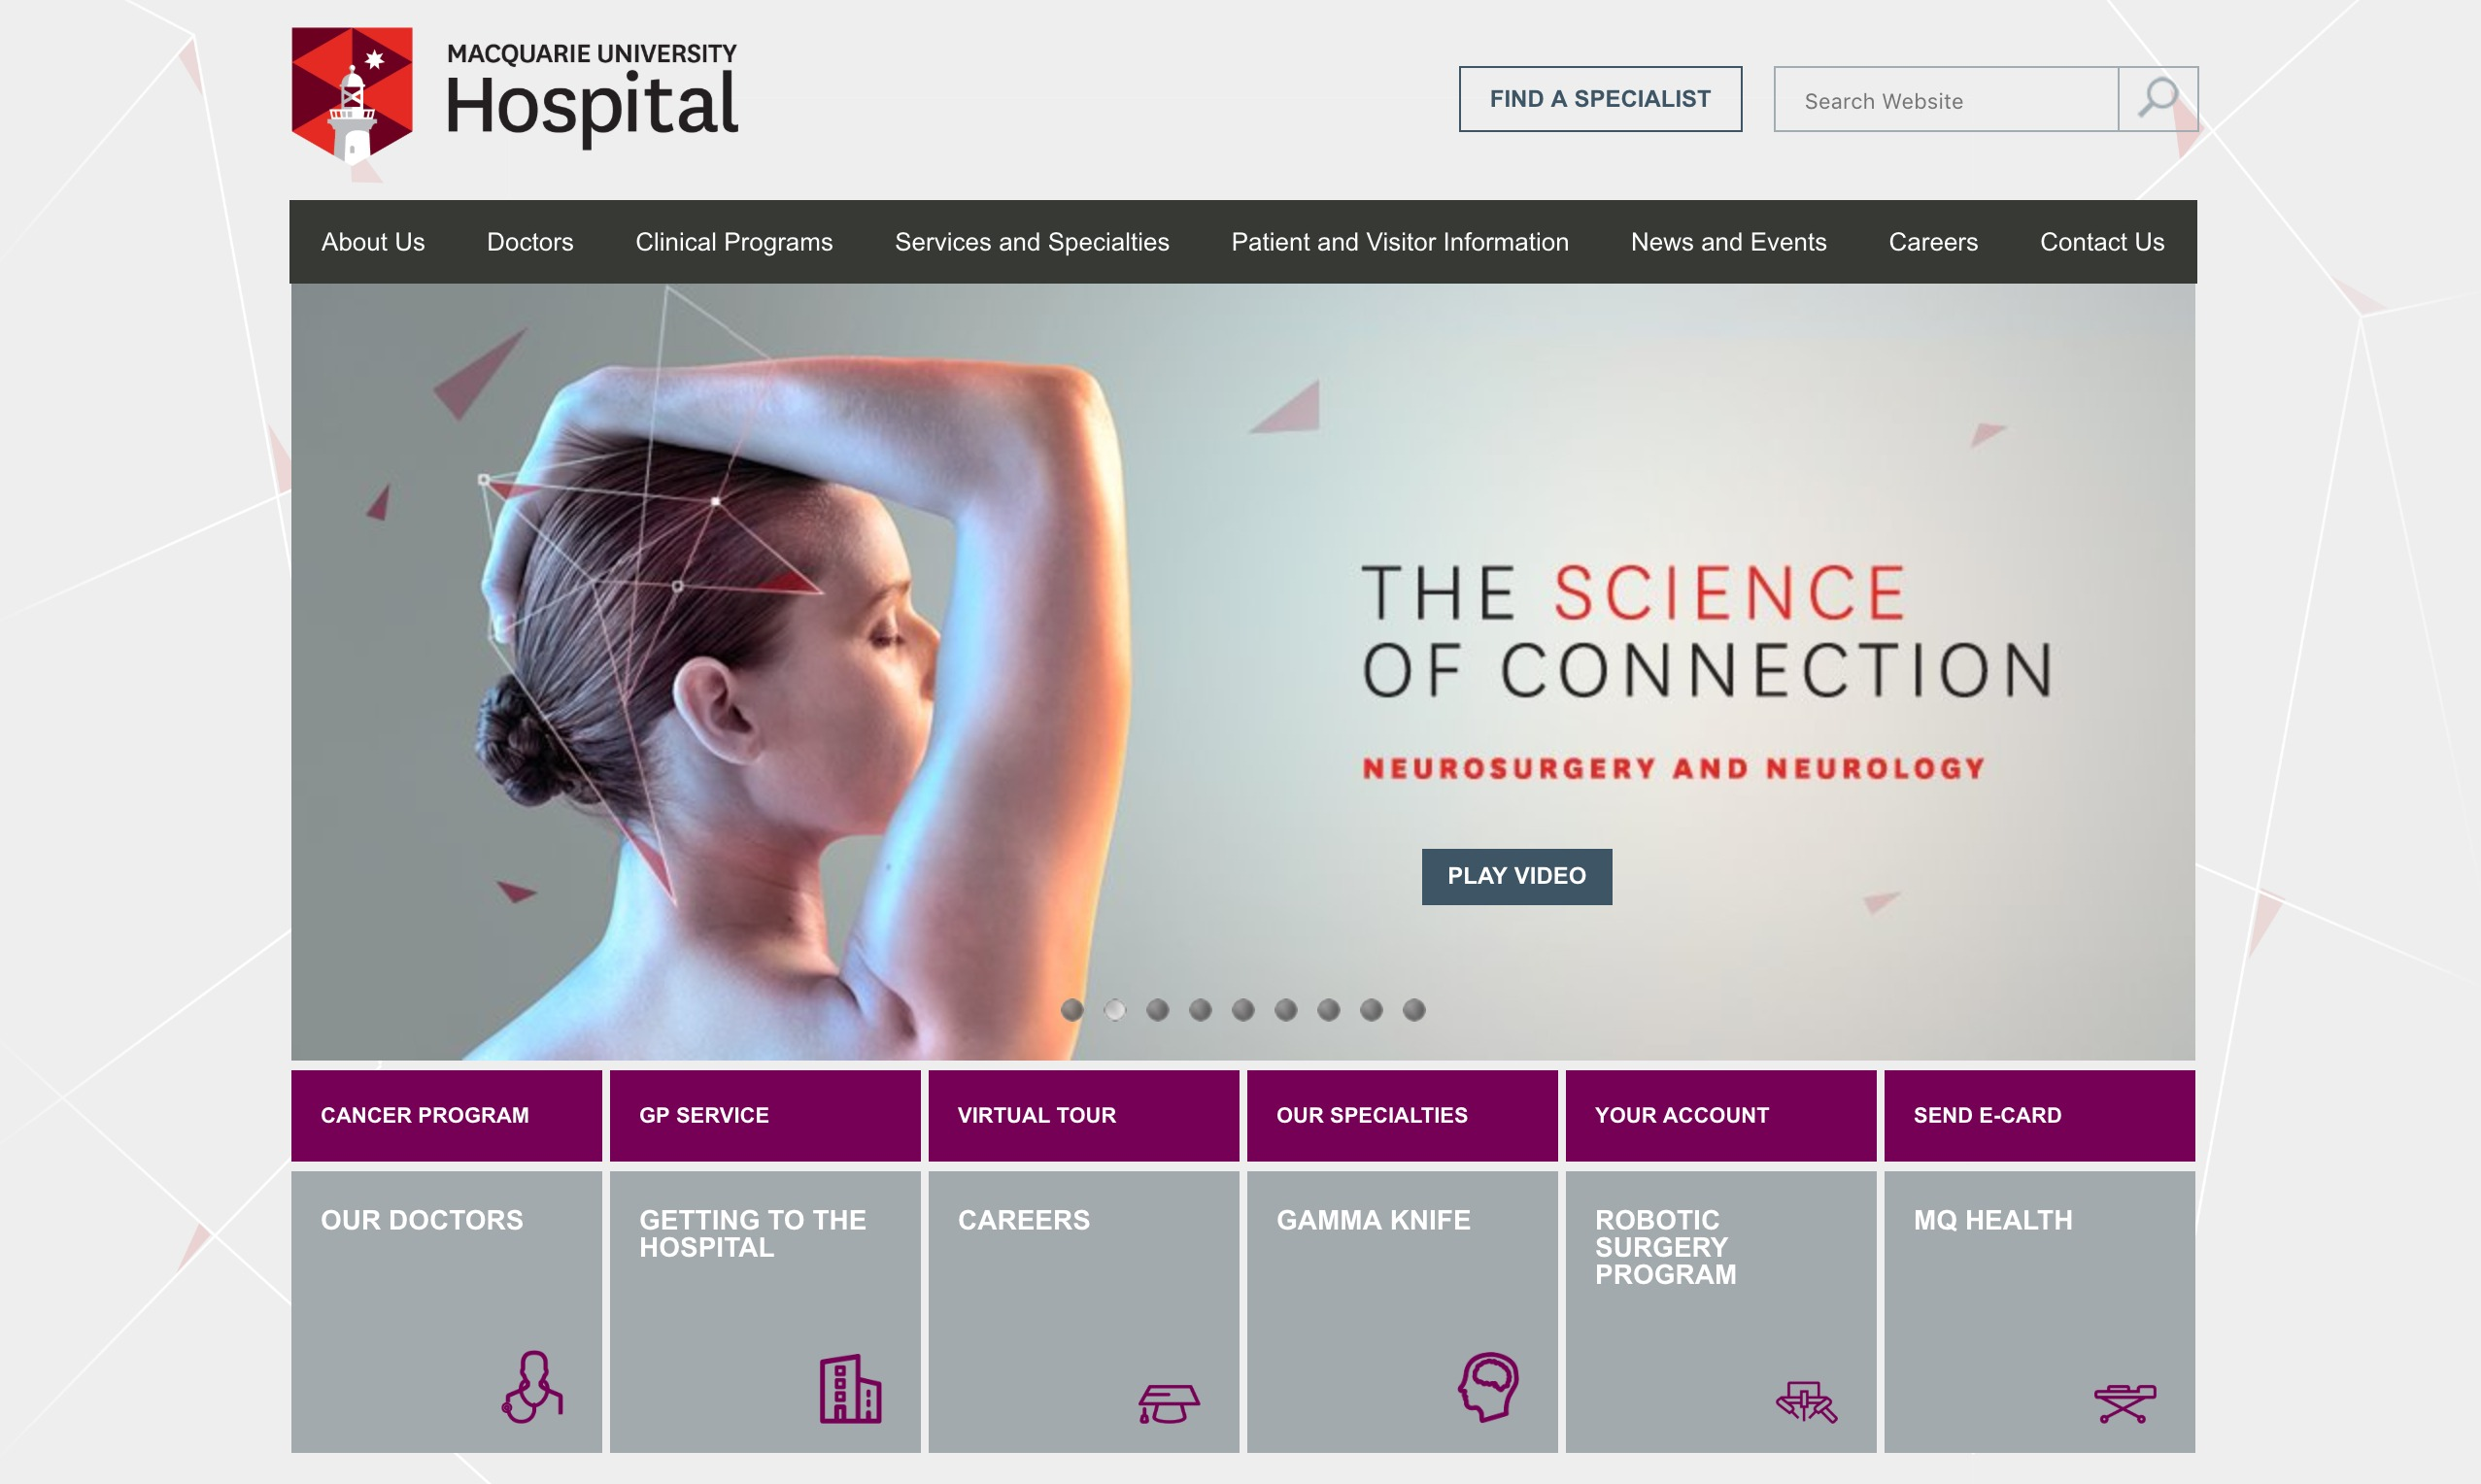 Macquarie University Hospital website - weblium